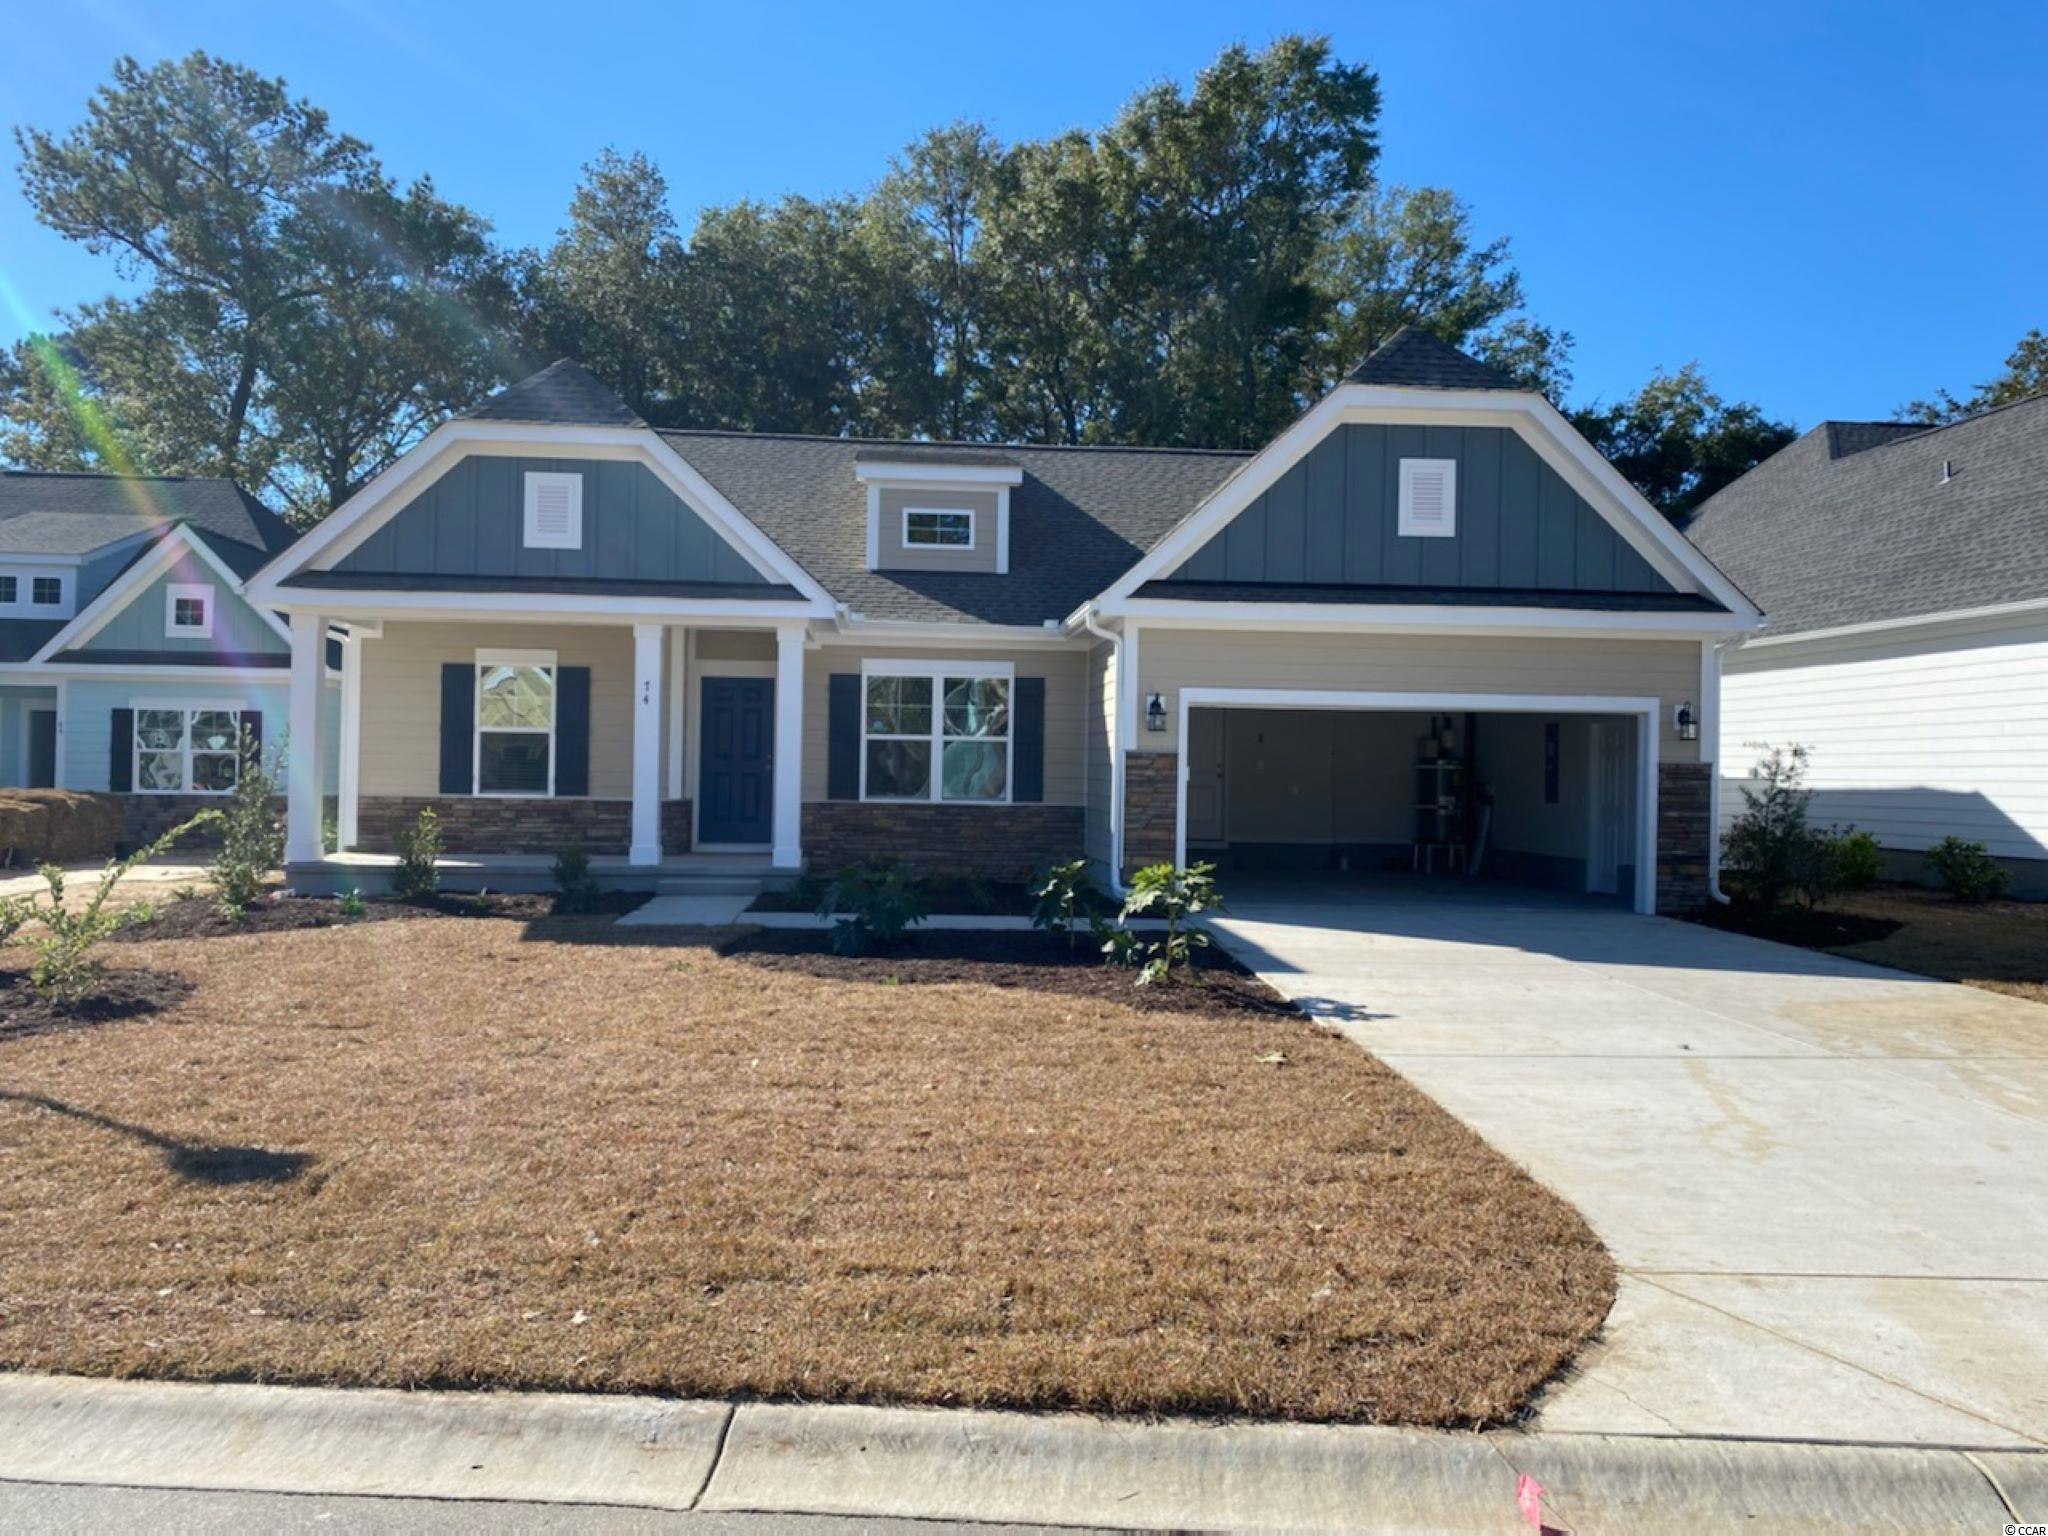 The wait is over for this new phase of Pawleys Plantation. This is a to be built plan with the standard features pricing that is ready for your input on the options and colors.  The home includes granite countertops throughout, 9 foot ceilings, crown molding and tall baseboards, lawn irrigation and much more! All measurements are approximate and can be verified by Buyers Agent/Purchaser. This home is a Wisteria E Model. Don't miss this opportunity to own the home of your dreams in Pawleys Plantation!